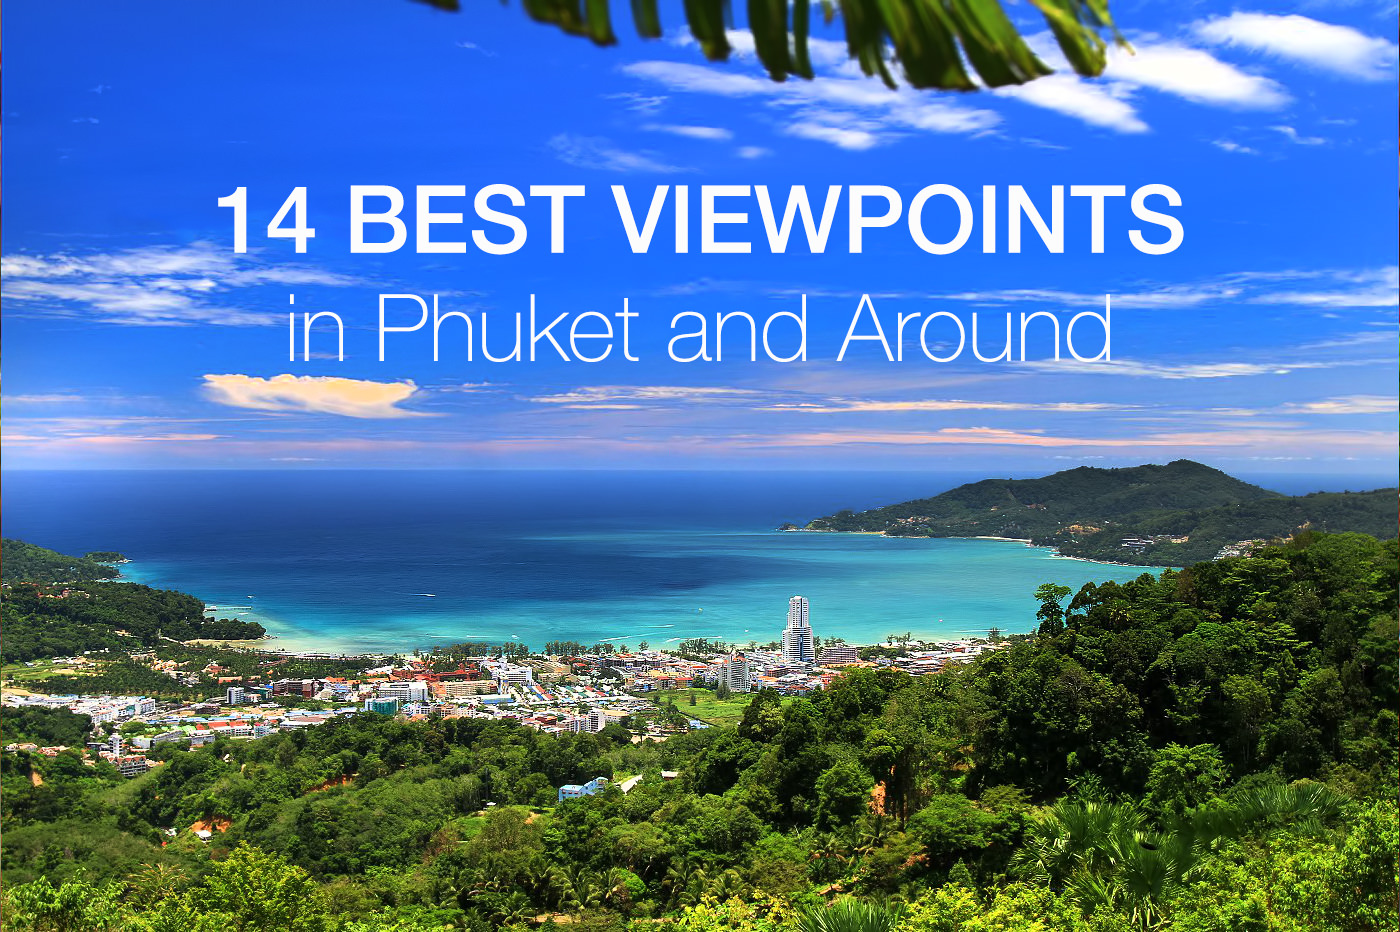 14 Phuket Viewpoints (Updated)